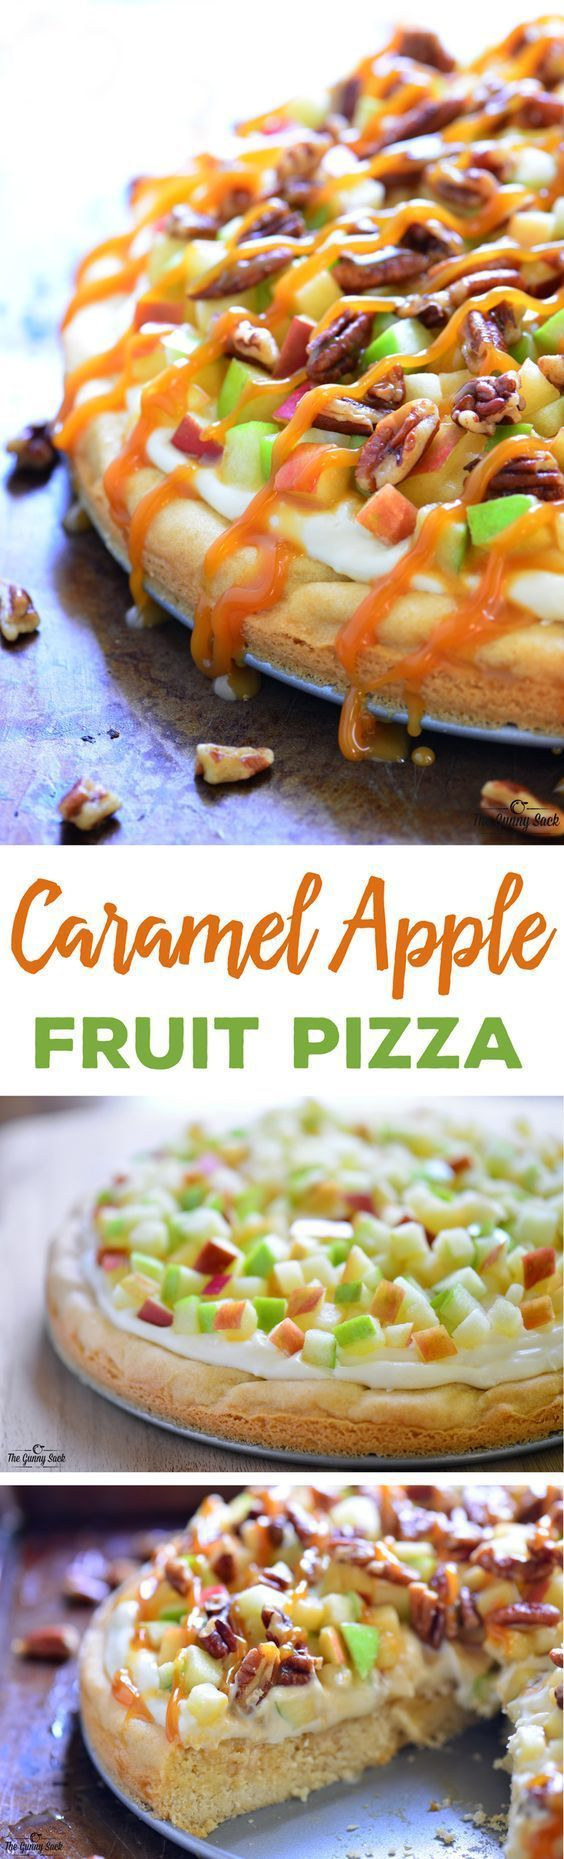 This Caramel Apple Fruit Pizza is a delicious fall dessert with a sugar cookie crust, cream cheese frosting, toasted pecans and a drizzle of delicious caramel as the perfect topper! Caramel Apple Dessert Fruit Pizza Recipe | The Gunny Sack